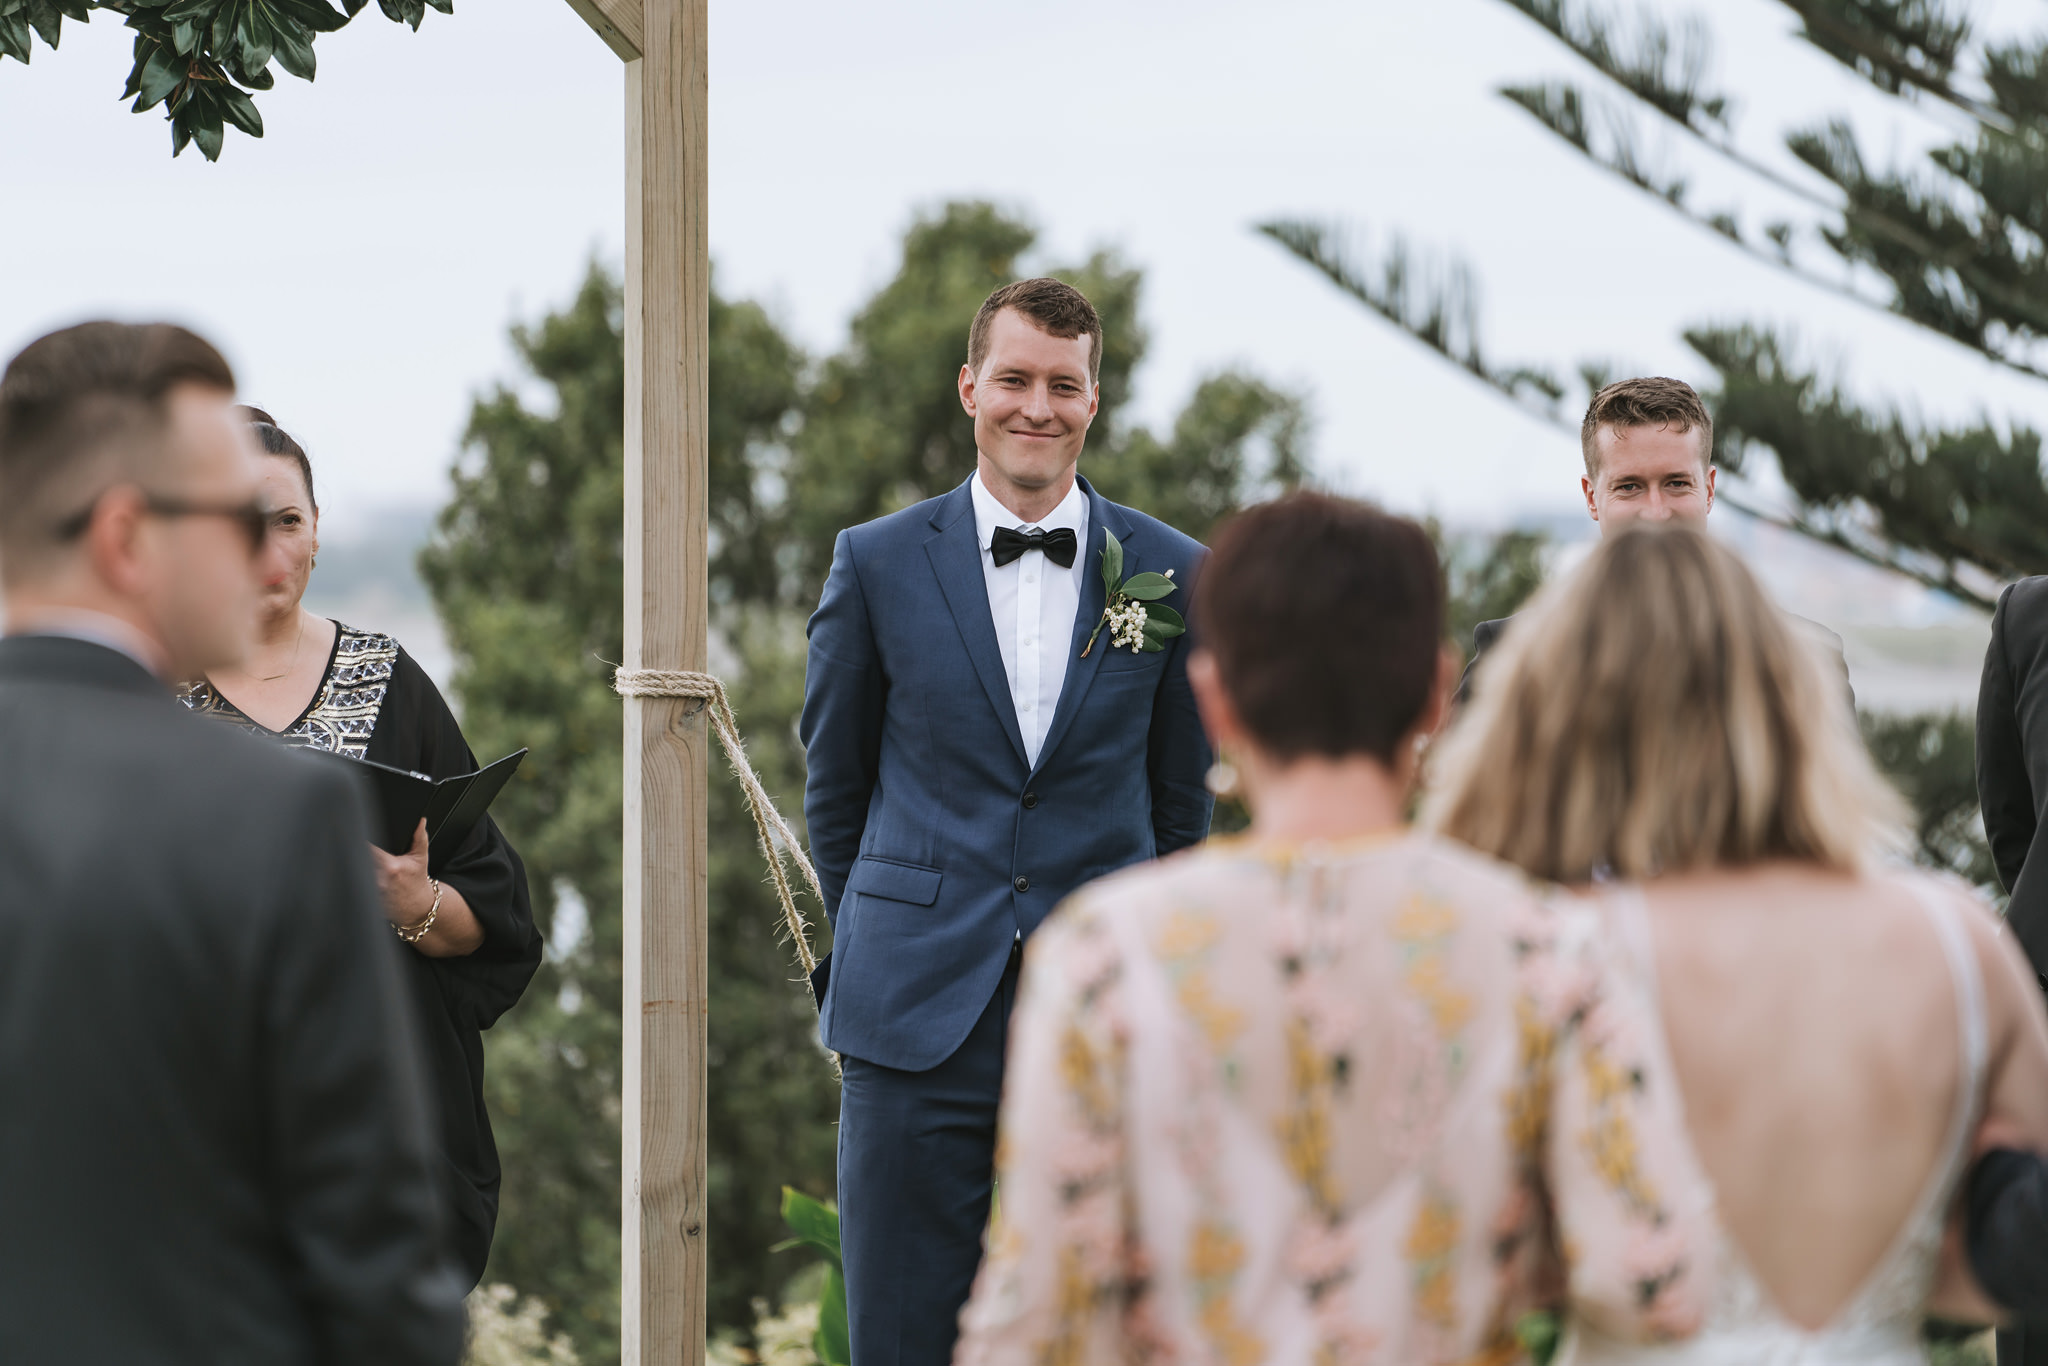 newfound-s-a-tauranga-new-zealand-wedding-photography-440